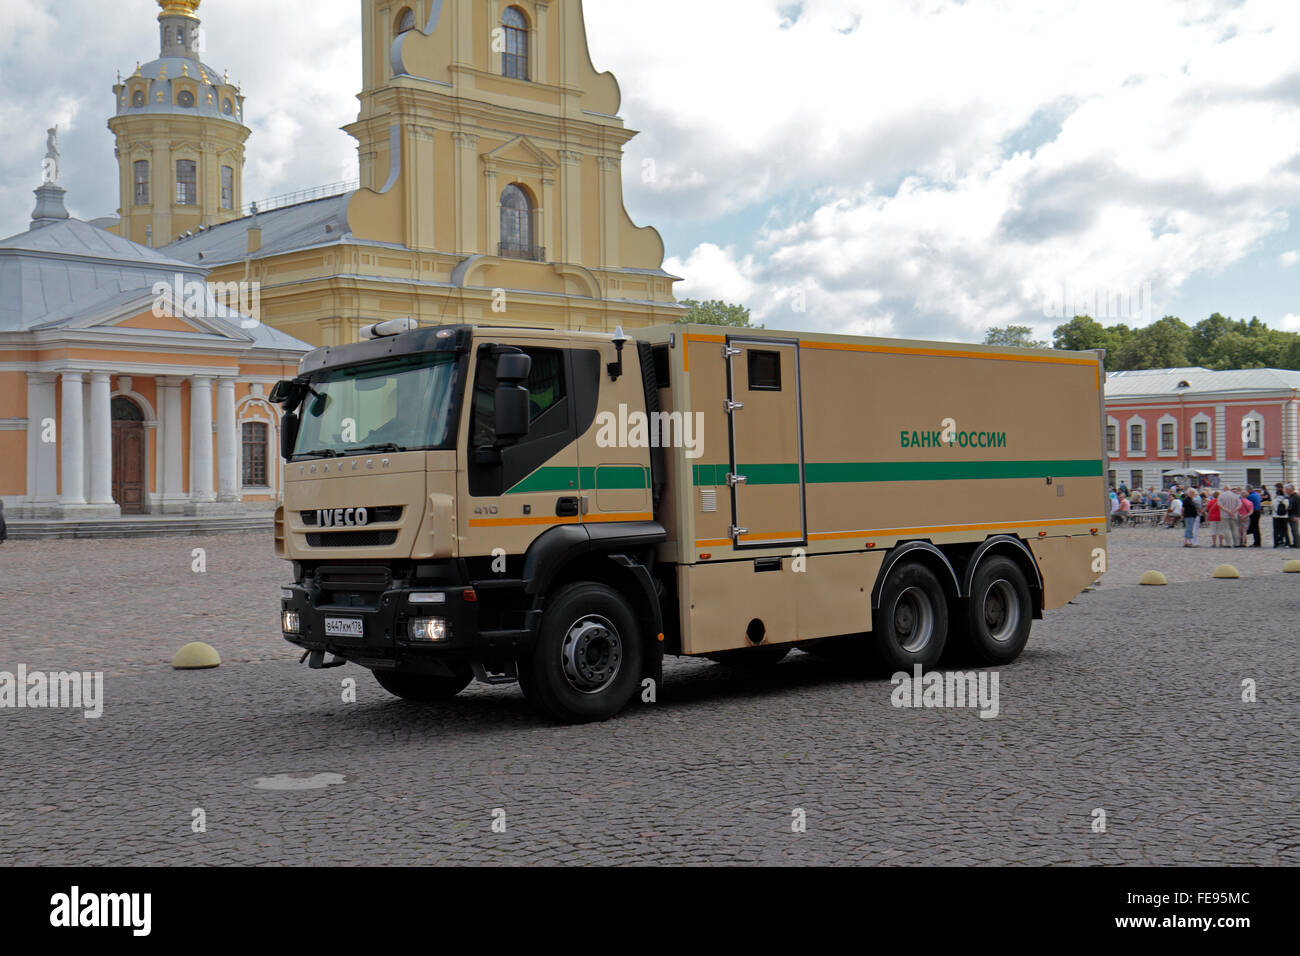 A Bahk Poccnn (Bank of Russia) cash security truck in the Peter and ...